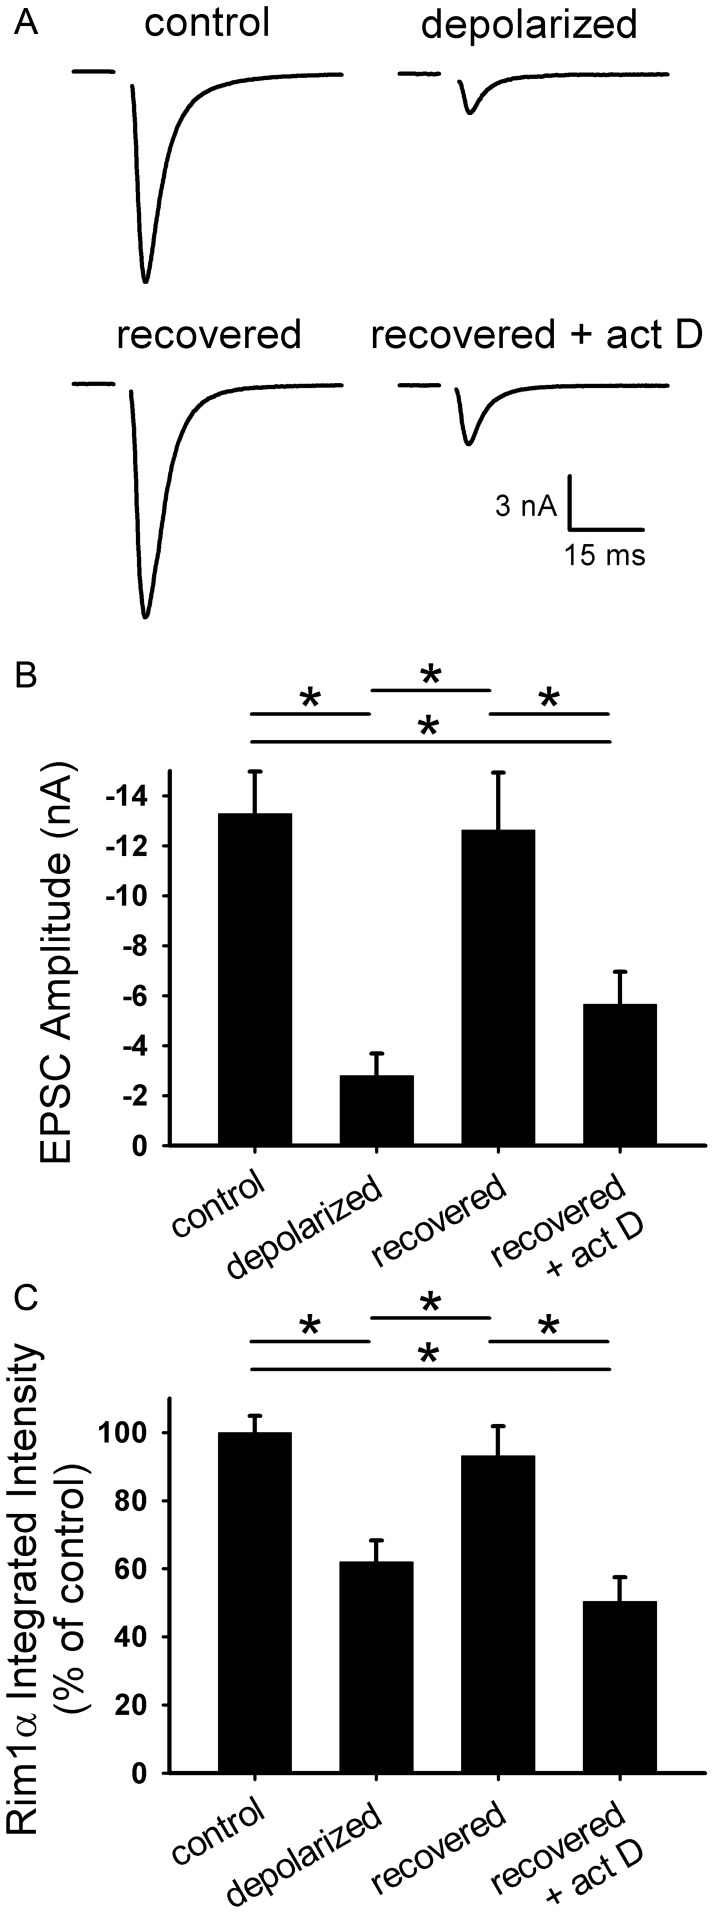 Transcription is required for functional recovery from depolarization-induced muting. A. Representative autaptic EPSCs from hippocampal neurons after 16 h 30 mM NaCl (control), 16 h 30 mM KCl (depolarized), or 16 h 30 mM KCl followed by 3 h recovery in fresh medium with (recovered+act D) or without (recovered) 200 ng/ml actinomycin D. Actinomycin D was applied 0.5 h prior to and during recovery. B. Summary of EPSC amplitudes from neurons treated as in panel A ( n = 32 neurons). C. Quantification of <t>Rim1</t> immunostaining at vGluT-1-positive synapses (not shown; n = 15 fields). Integrated intensity values were normalized to the average control value for a given experiment. *p